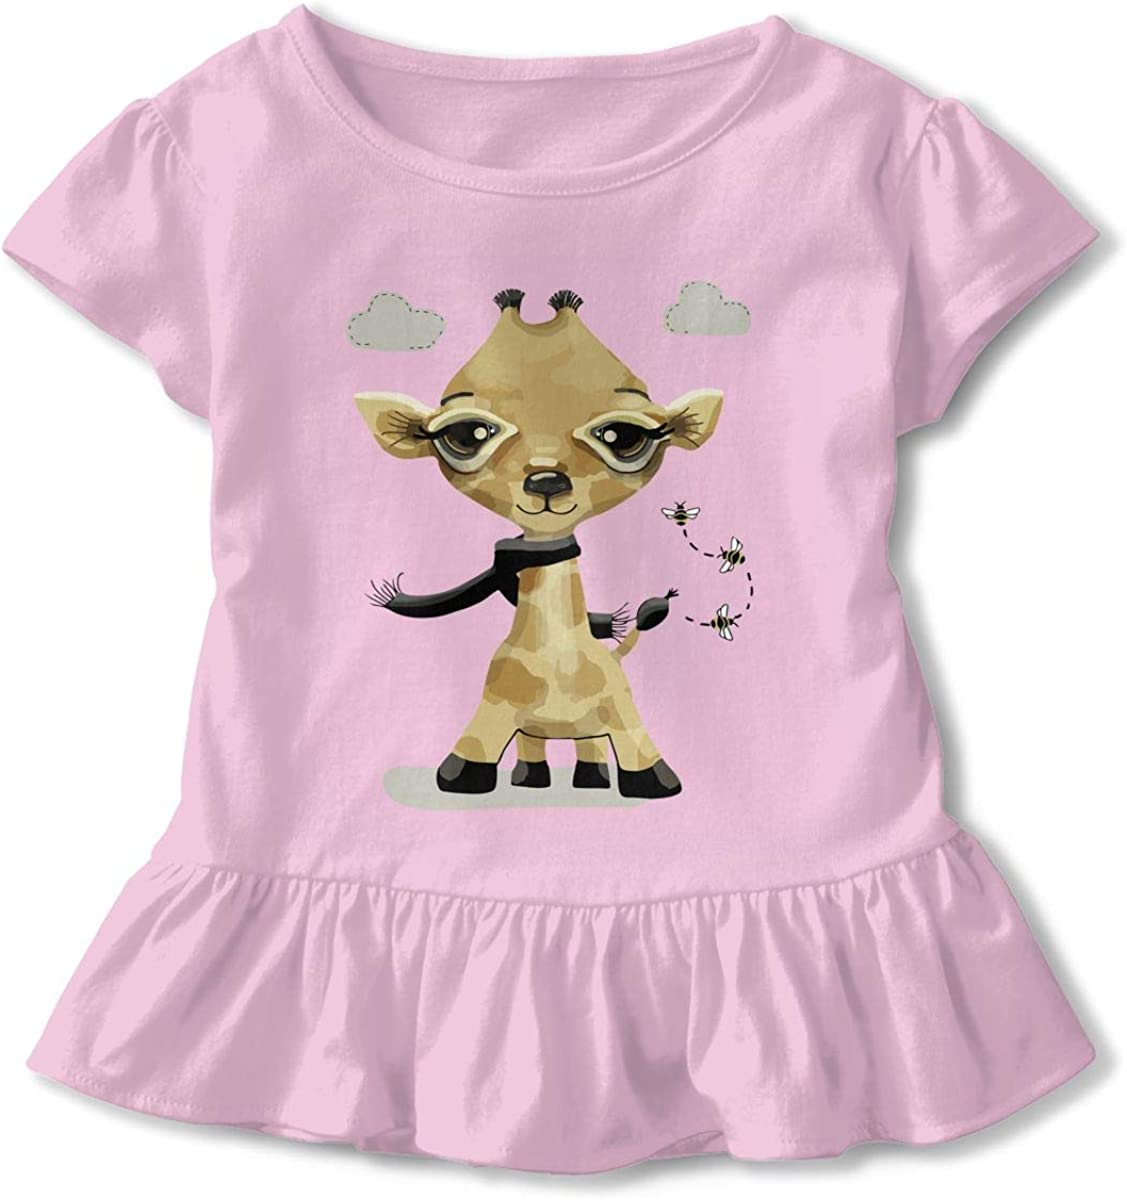 Adorable Giraffe Baby Girls Cotton Ruffle Top T-Shirt Flounces Dress Toddler Girls Dress Top